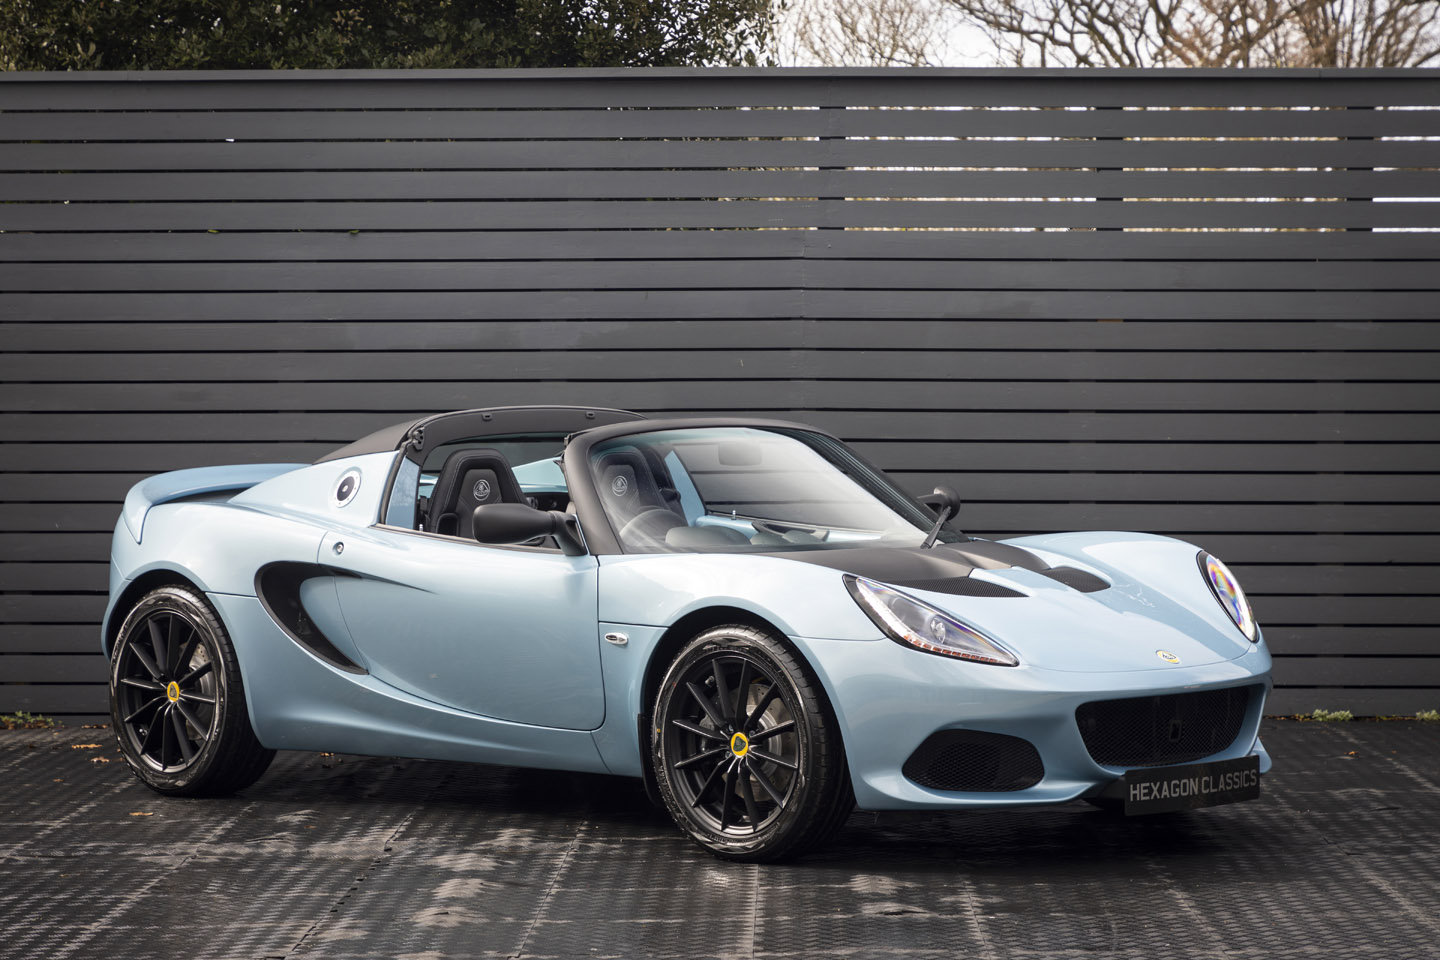 2019 LOTUS ELISE 220 SPORT For Sale (picture 1 of 6)